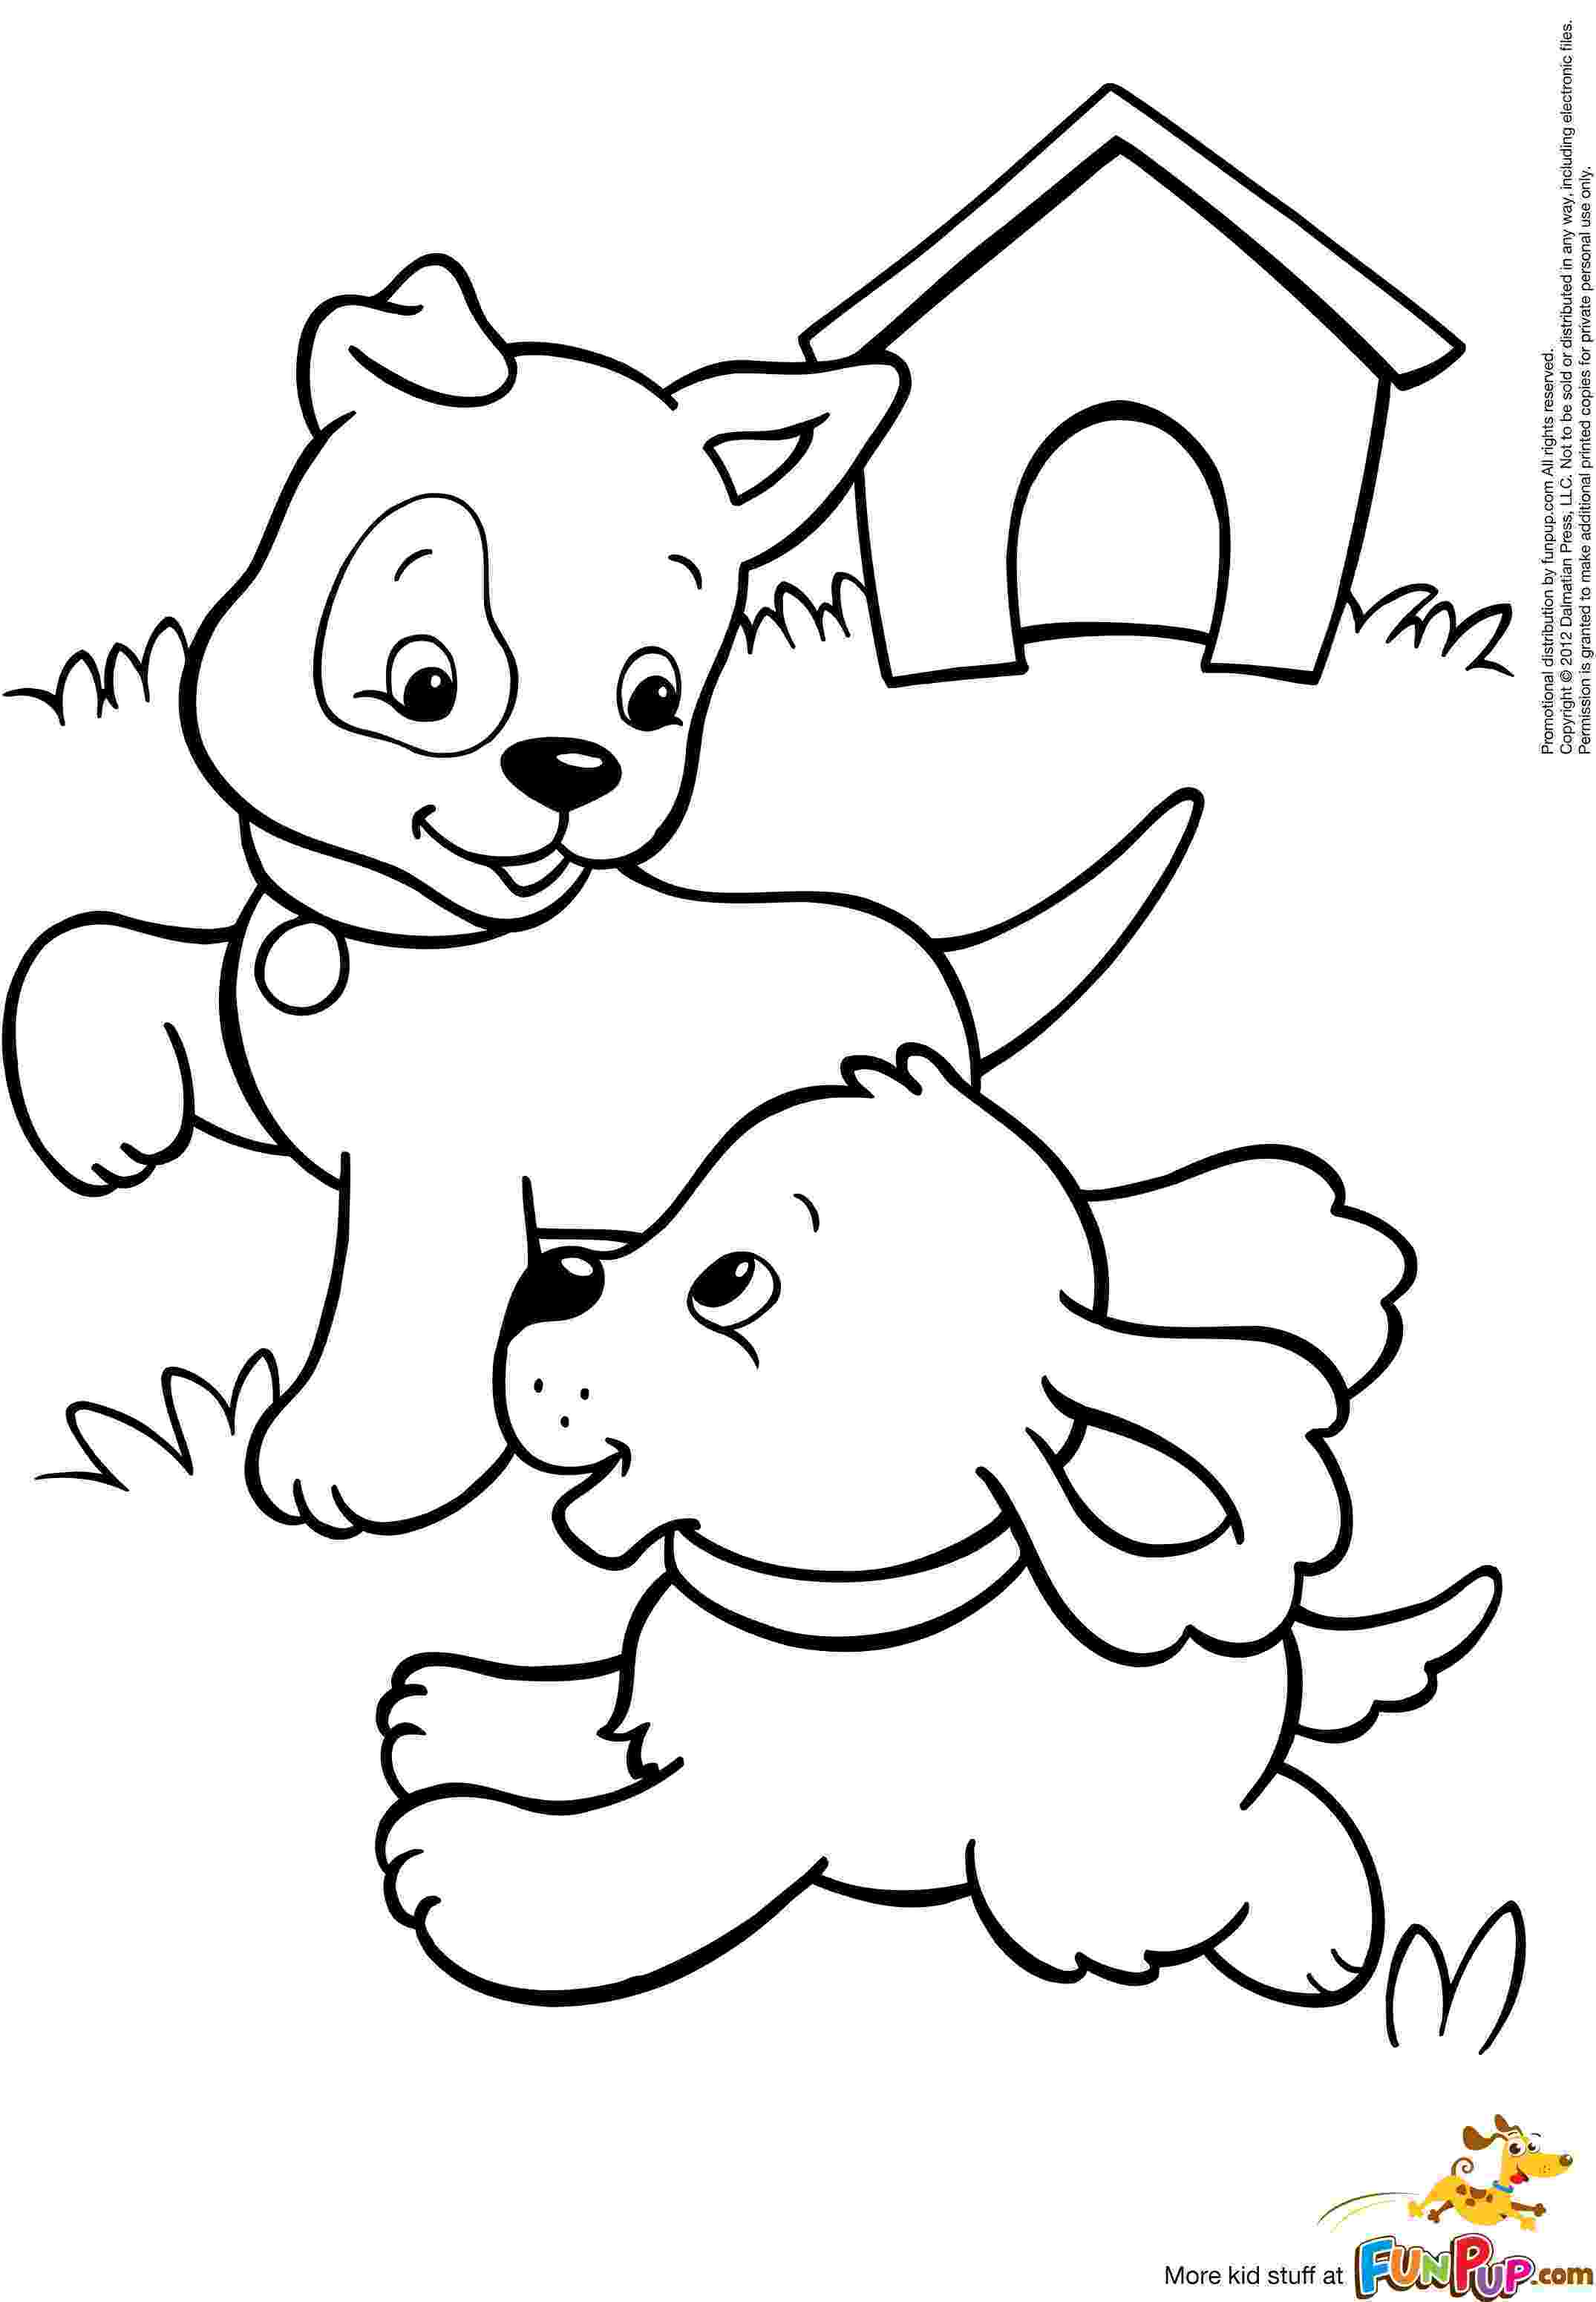 puppy coloring page printable dogs coloring pages to kids puppy coloring page